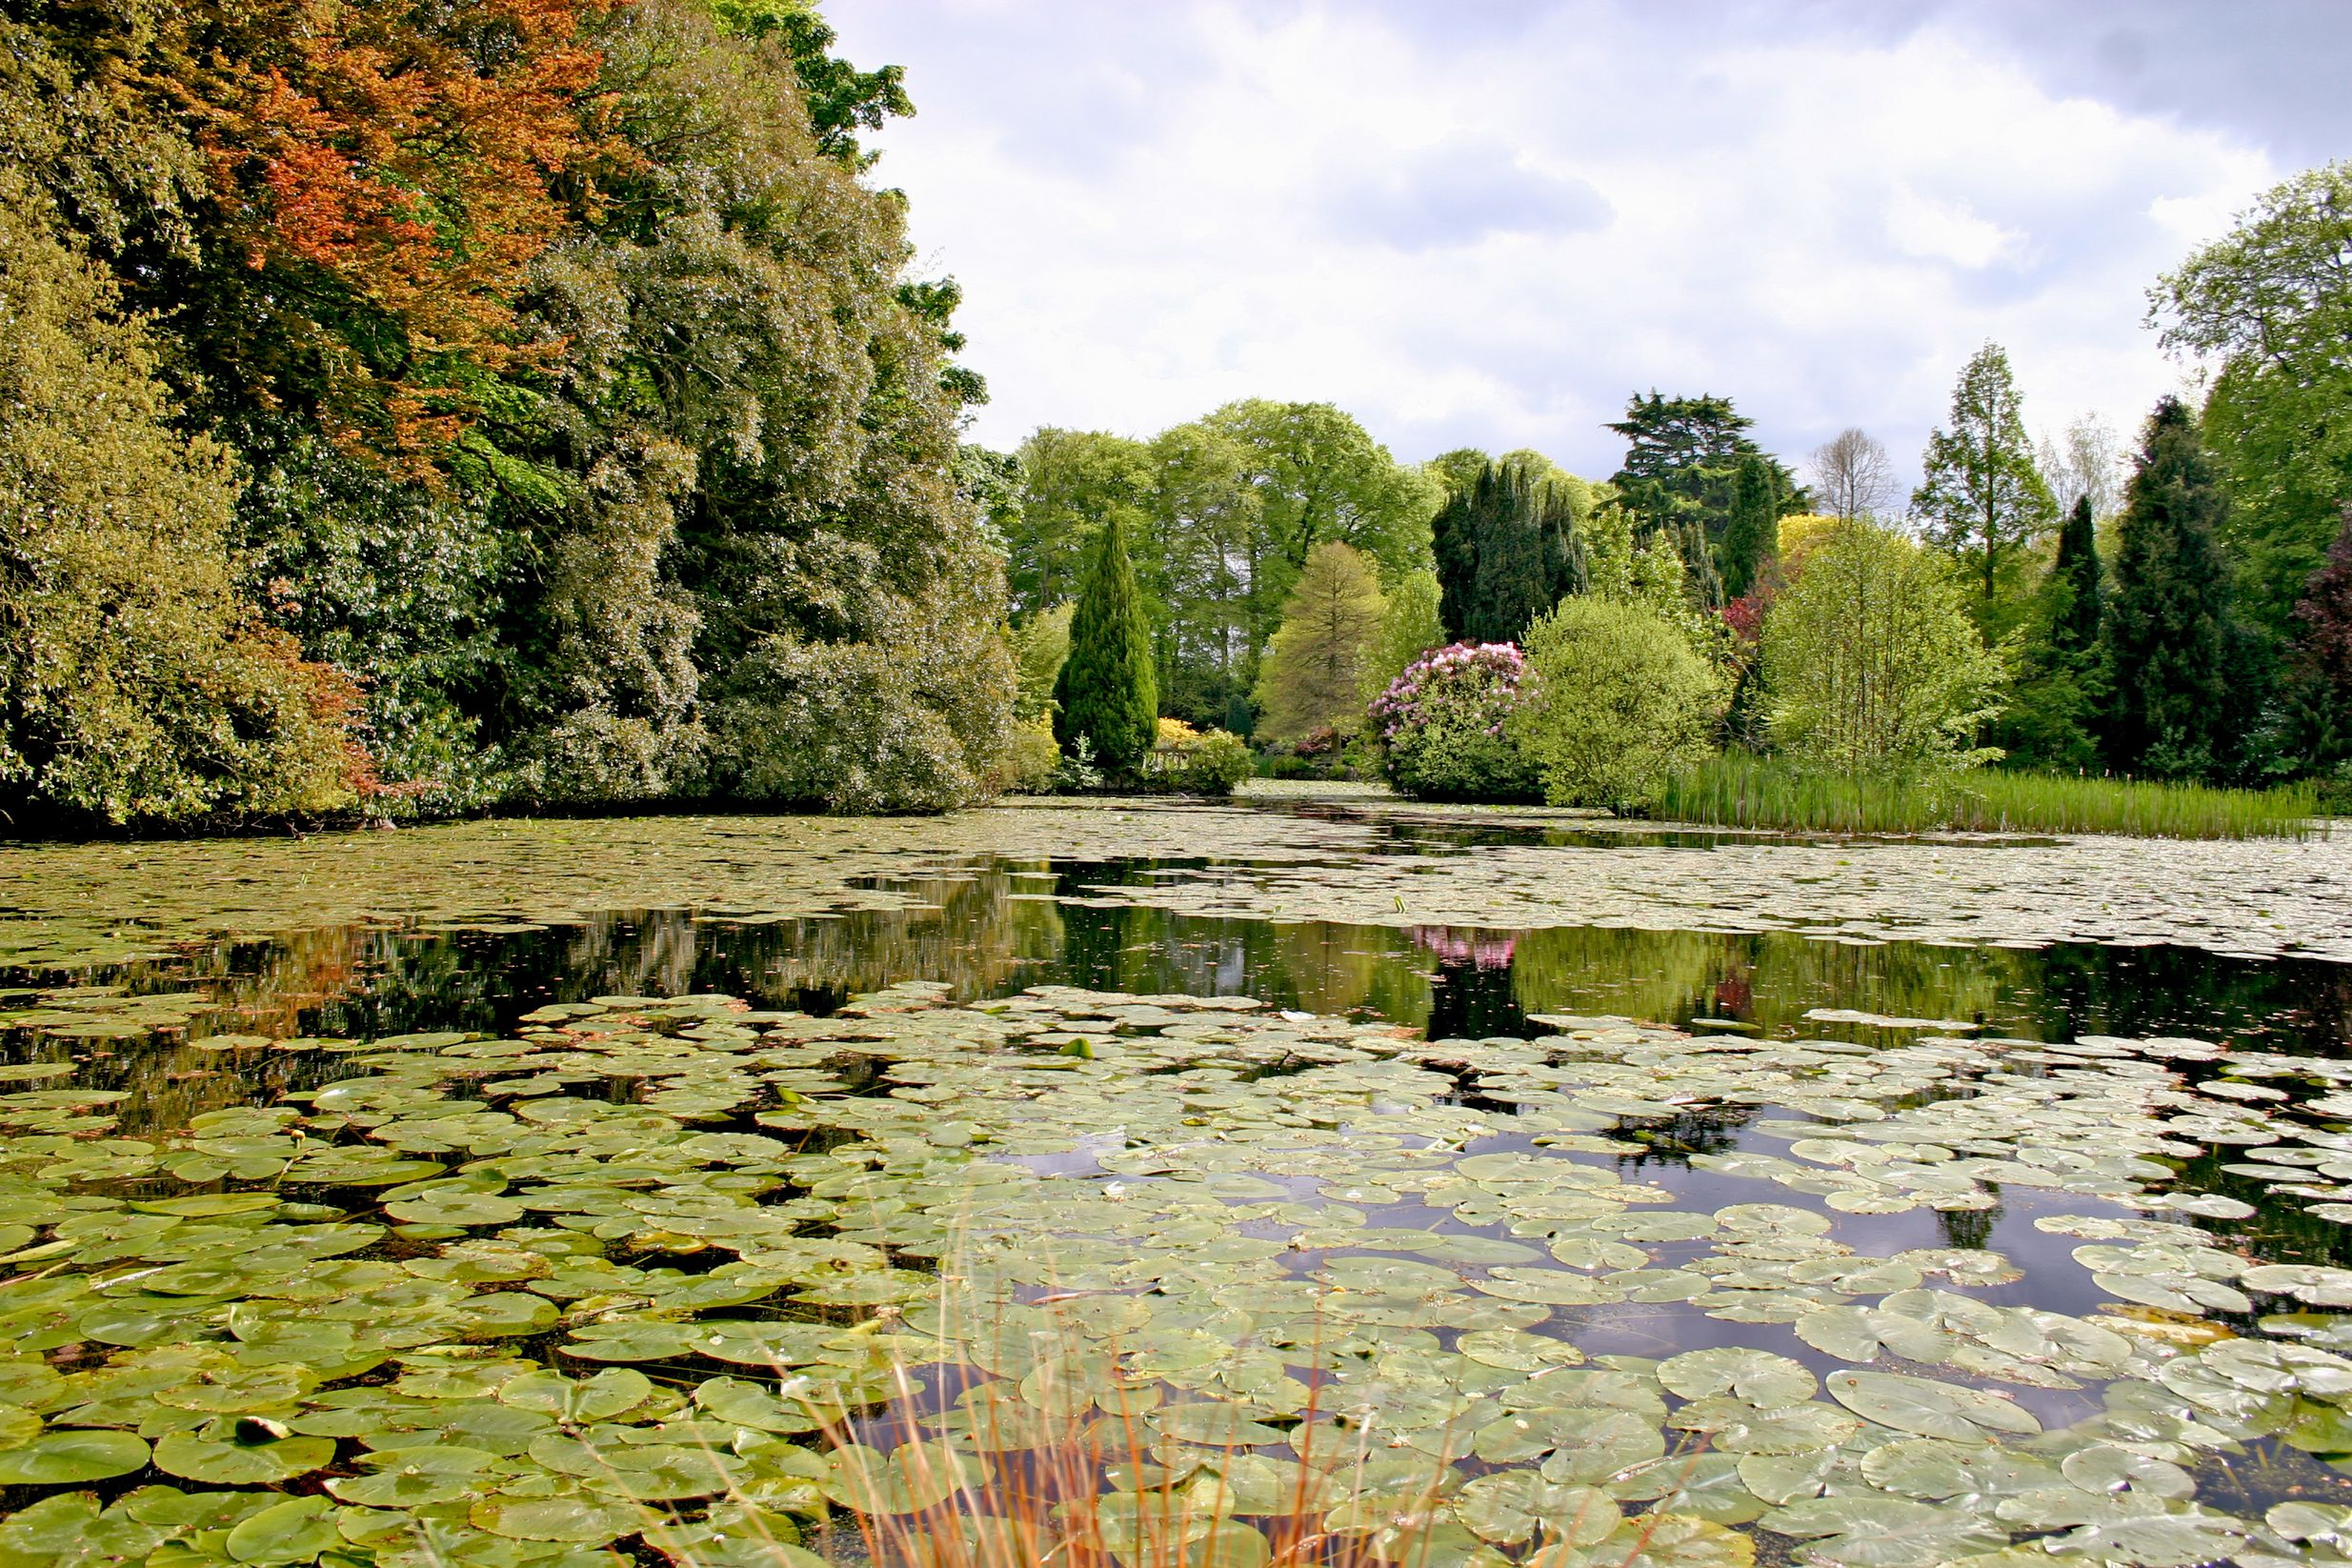 Enjoy the verdant countryside with activity holidays in Ireland's rivers